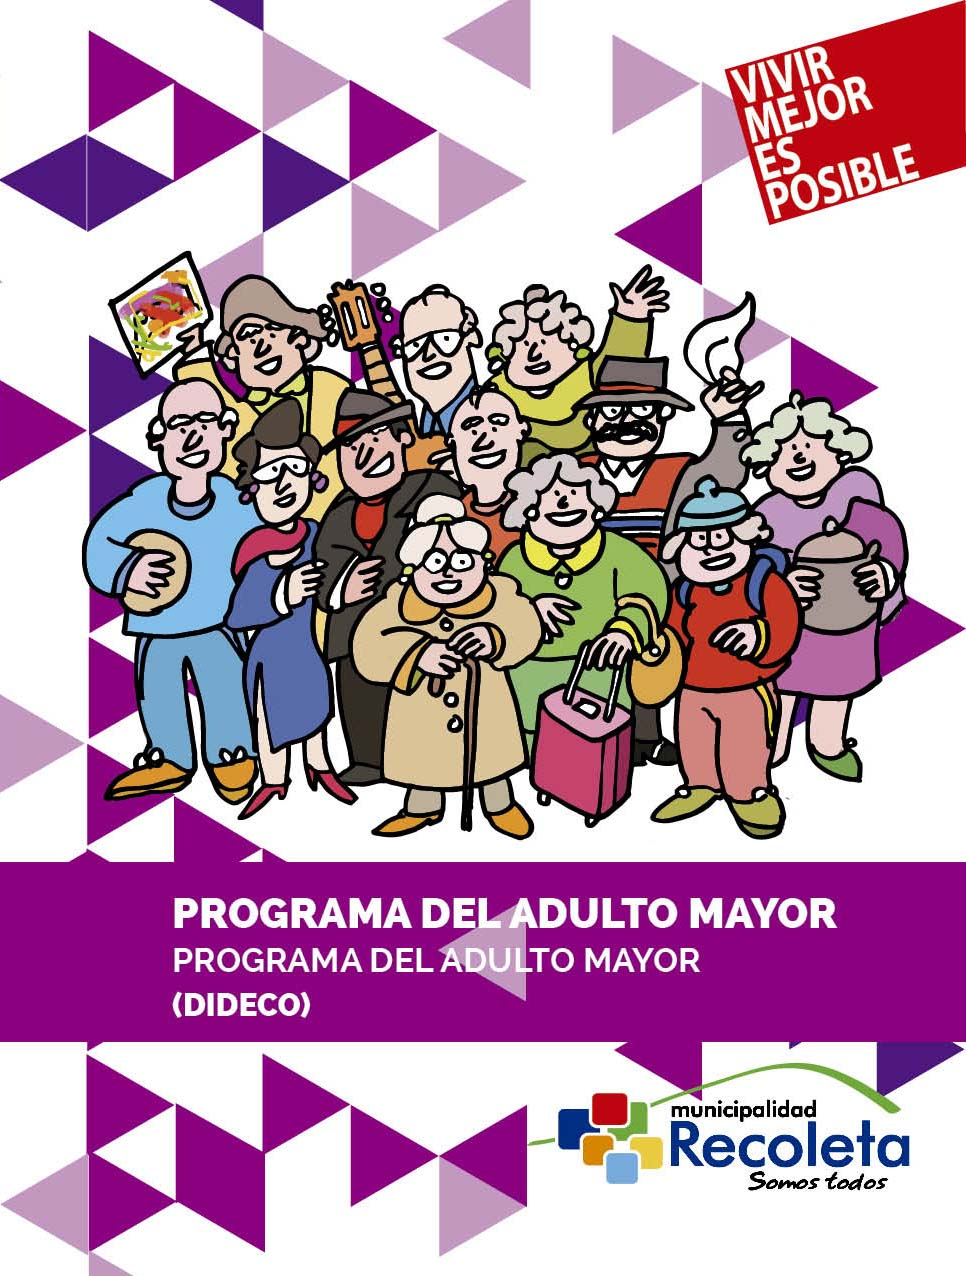 programa adulto mayor1 copia